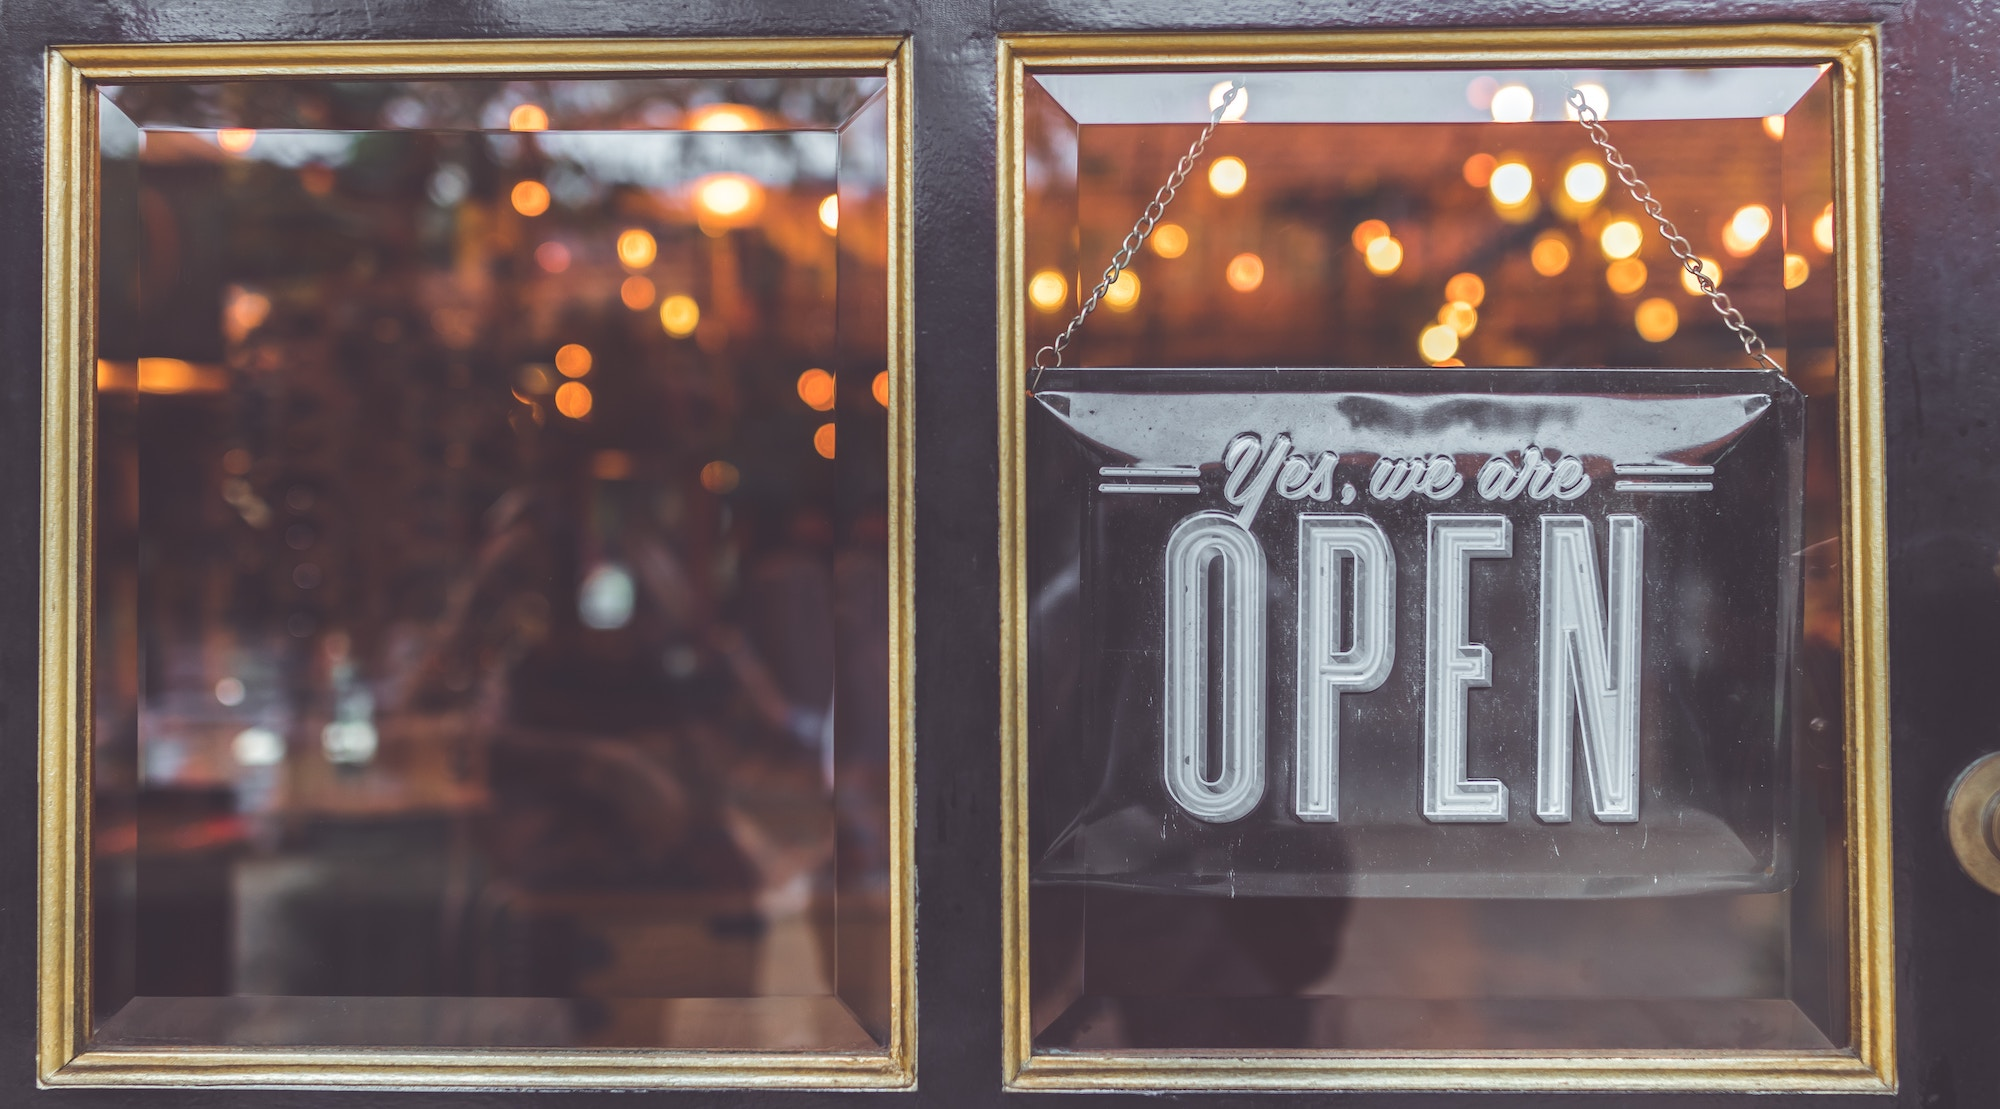 restaurant 'open' sign